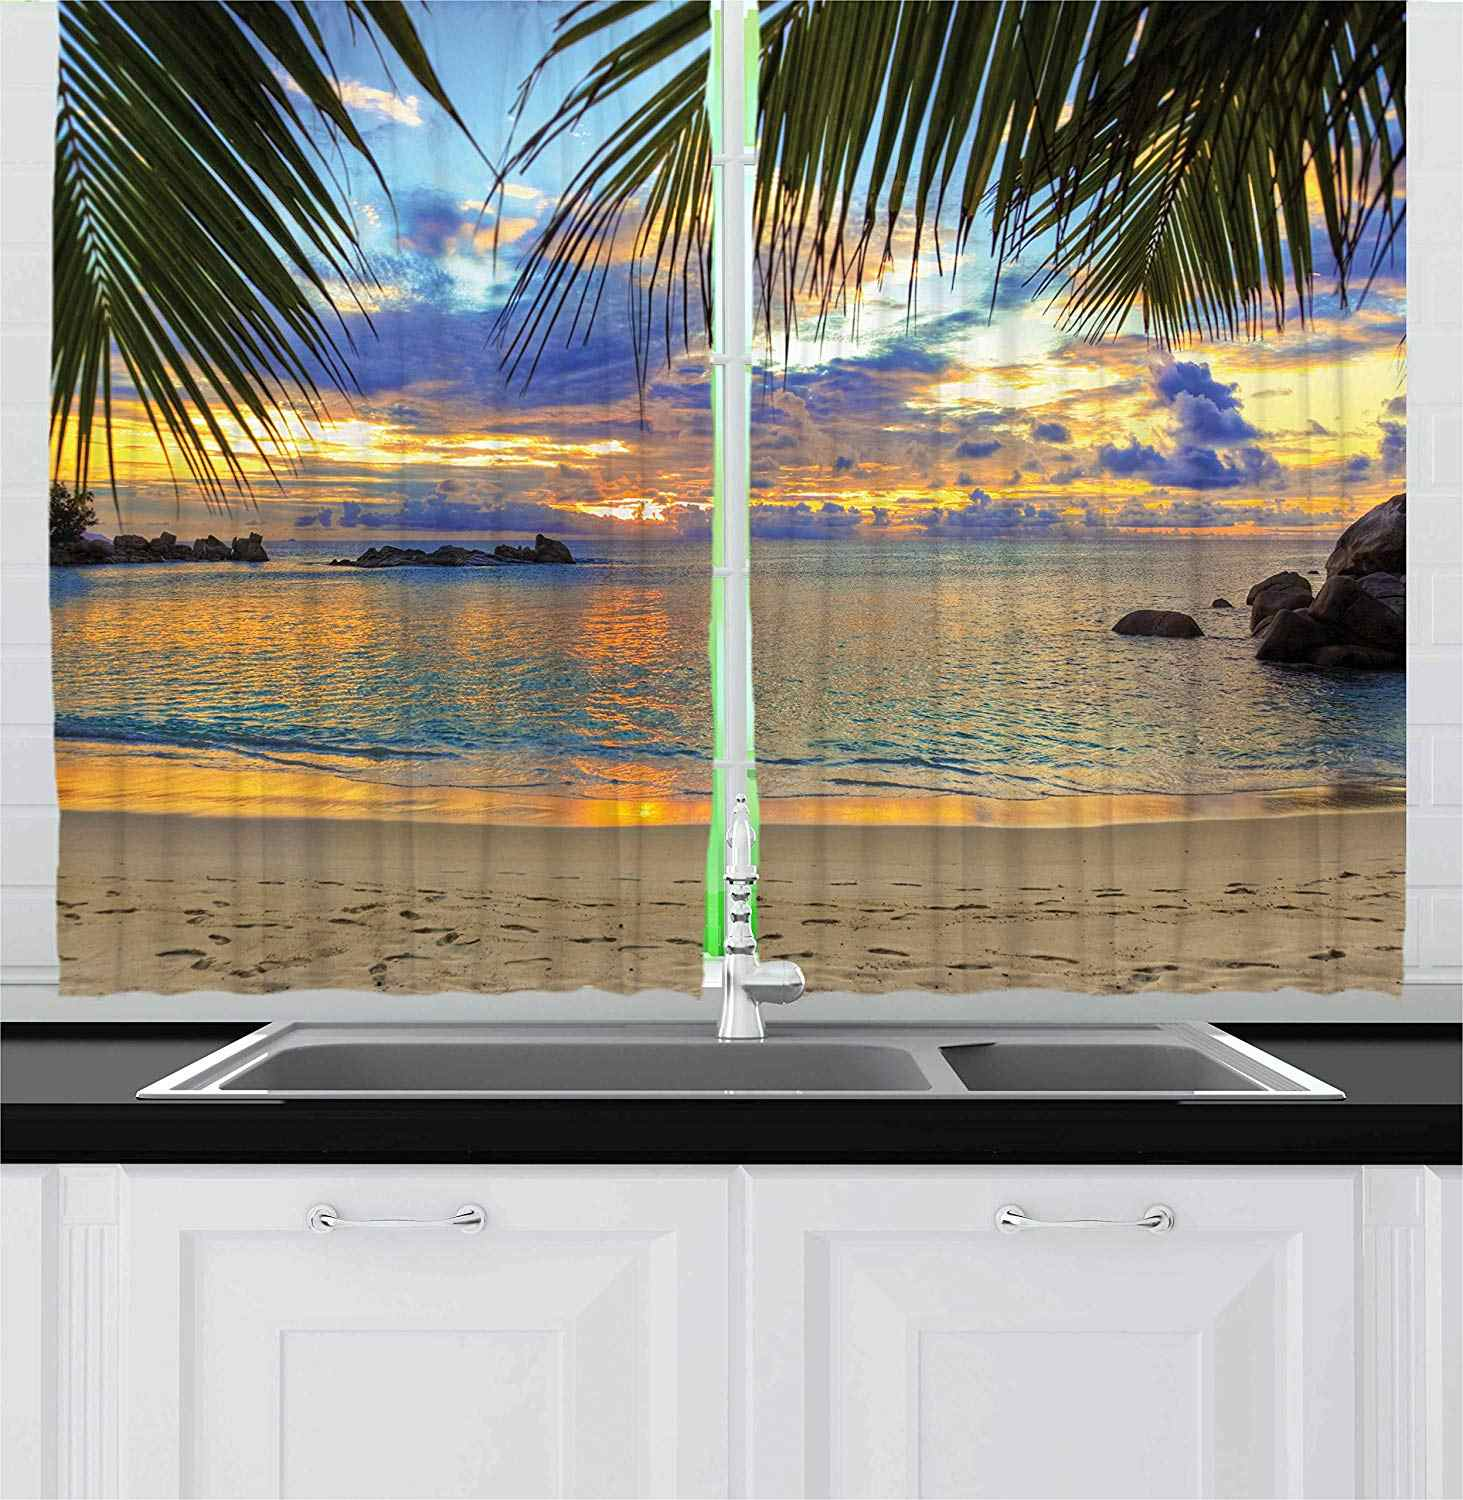 Tropical Kitchen Curtains Exotic Beach in Sundown Hawaii Palm Trees Foliage Idyllic Summer Nature Photography Window Decor